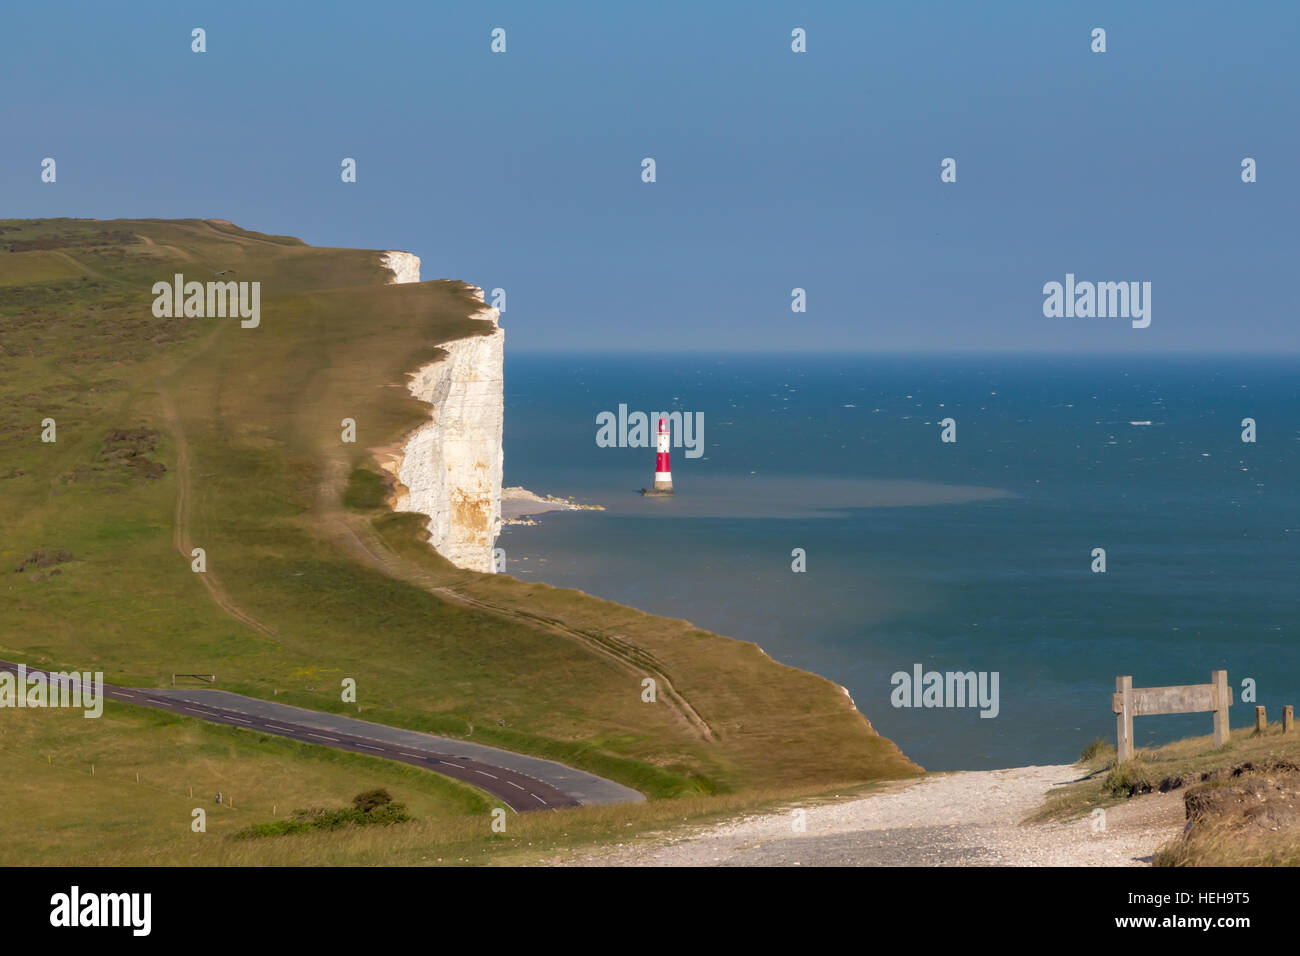 Looking at Beachy Heady with the lighthouse on a bright summer's day.  Shows a road, and a hiking track. - Stock Image